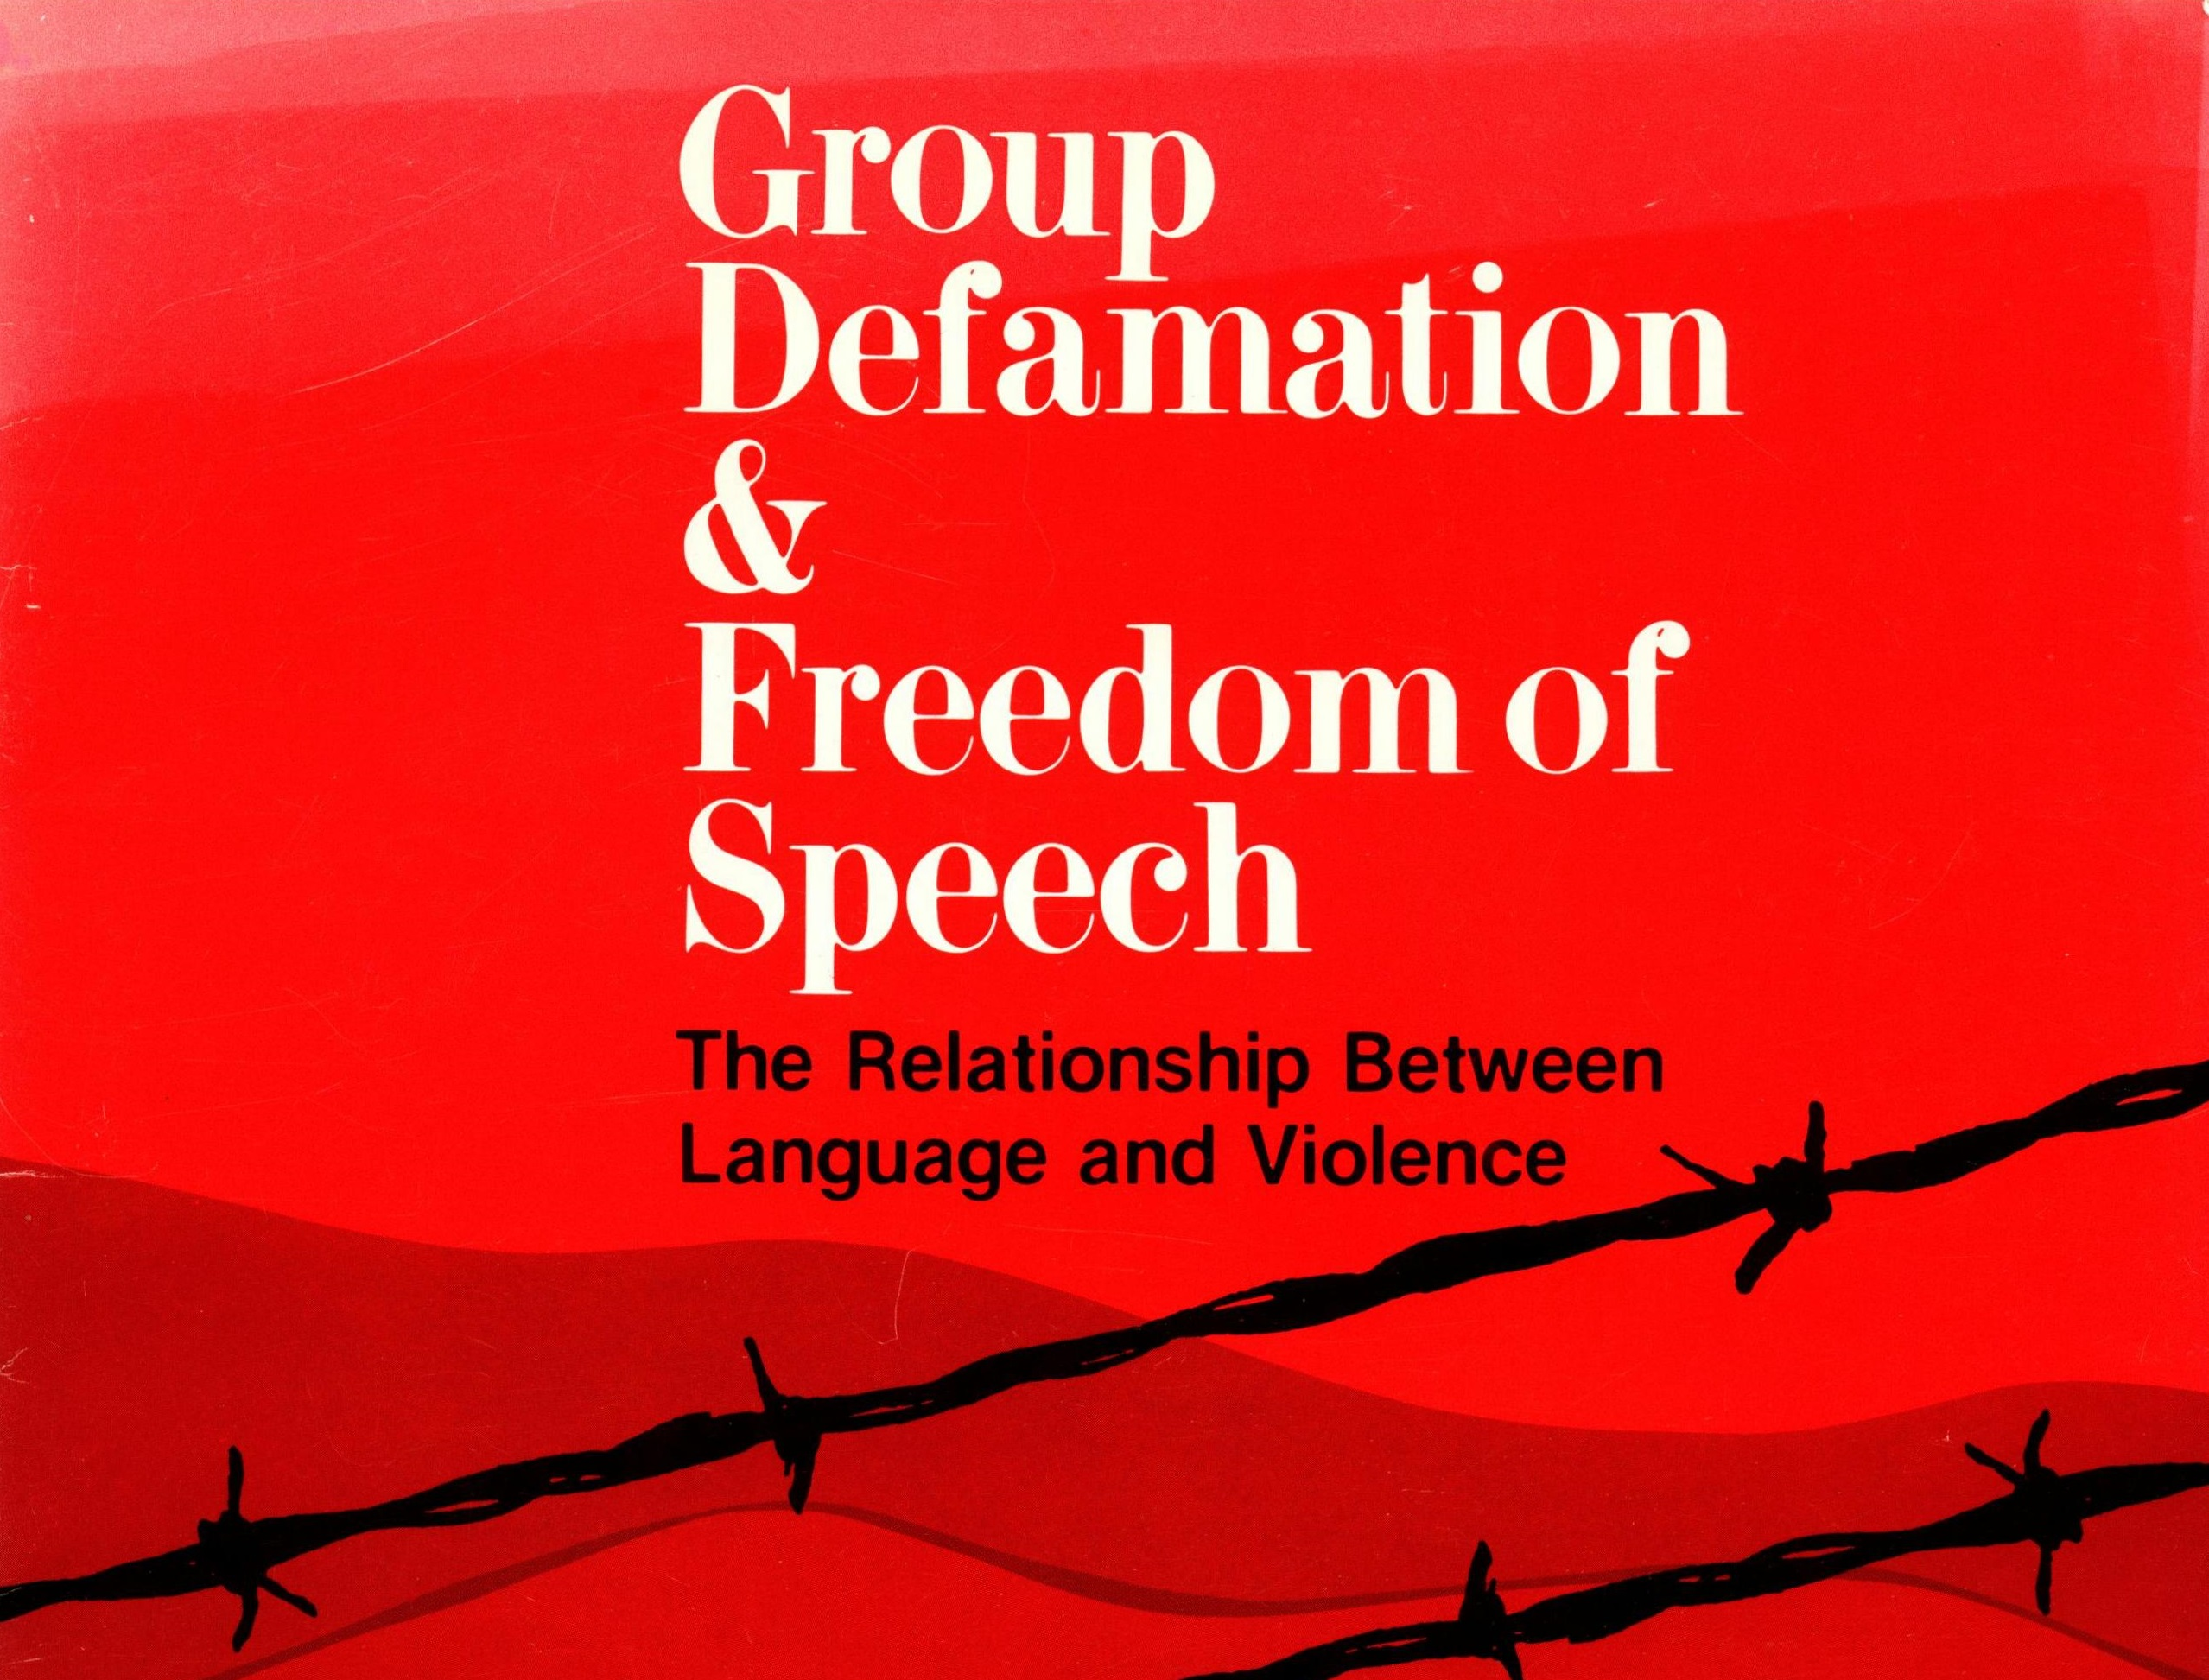 Group Defamation & Freedom of Speech: The Relationship Between Language and Violence (1988)